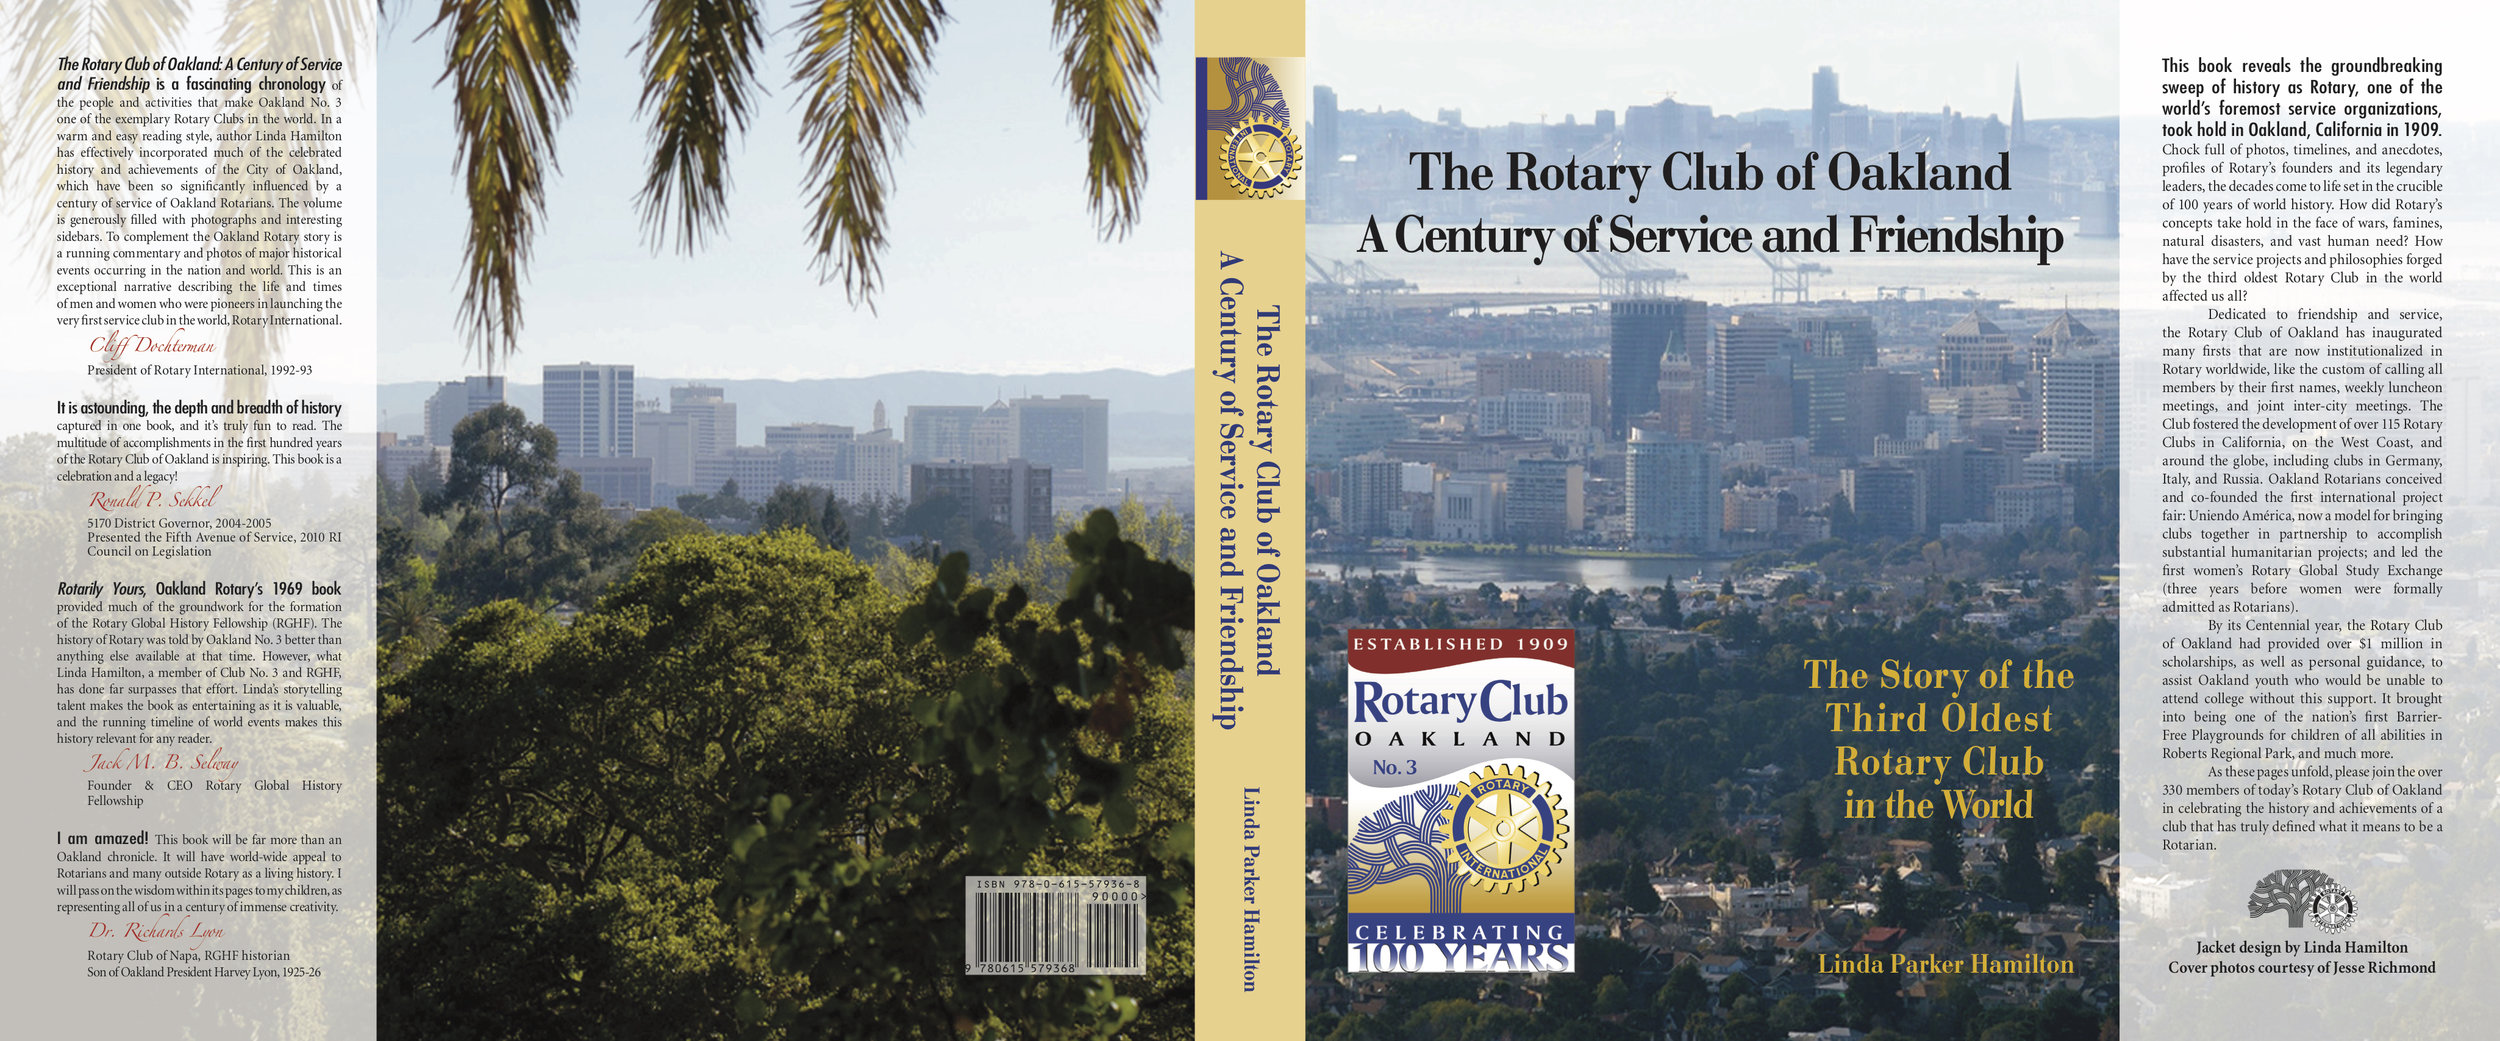 As an Oakland Rotarian, creating this book was near and dear to my heart! The Centennial book for the Rotary Club of Oakland tells the story not only of the club, but of the history of Rotary and the city of Oakland, California. New members receive the book when installed. Guest speakers receive the book as a gift. I'd love to help other Rotary clubs save their stories! Also, ask me about speaking to your Rotary Club, storytelling about Rotary and some of its amazing history. Do you know how the Four-Way Test was created?